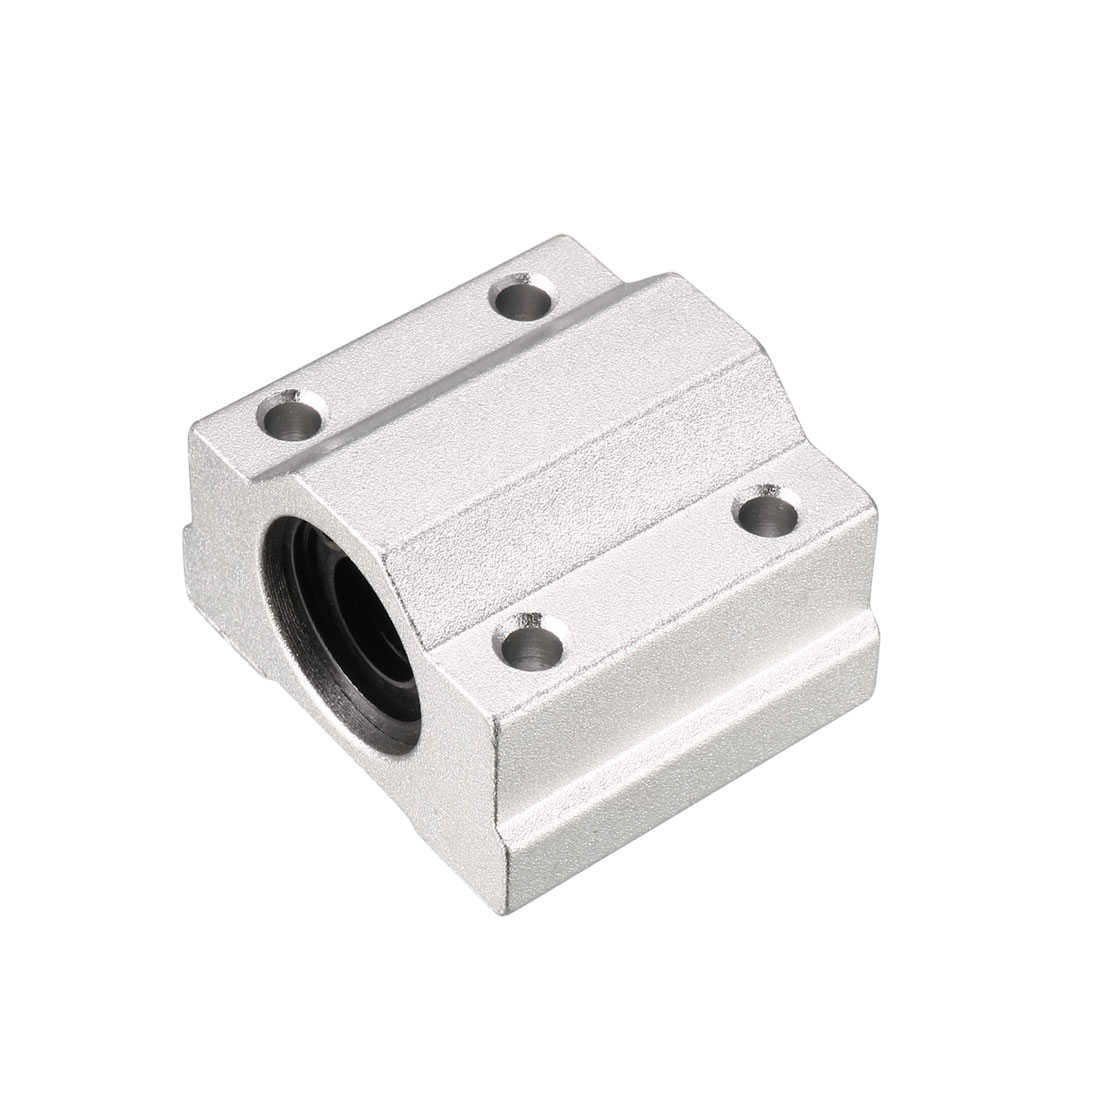 SCS10 LM10UU 10mm Linear Motion Ball Bearing Slide Unit Bushing